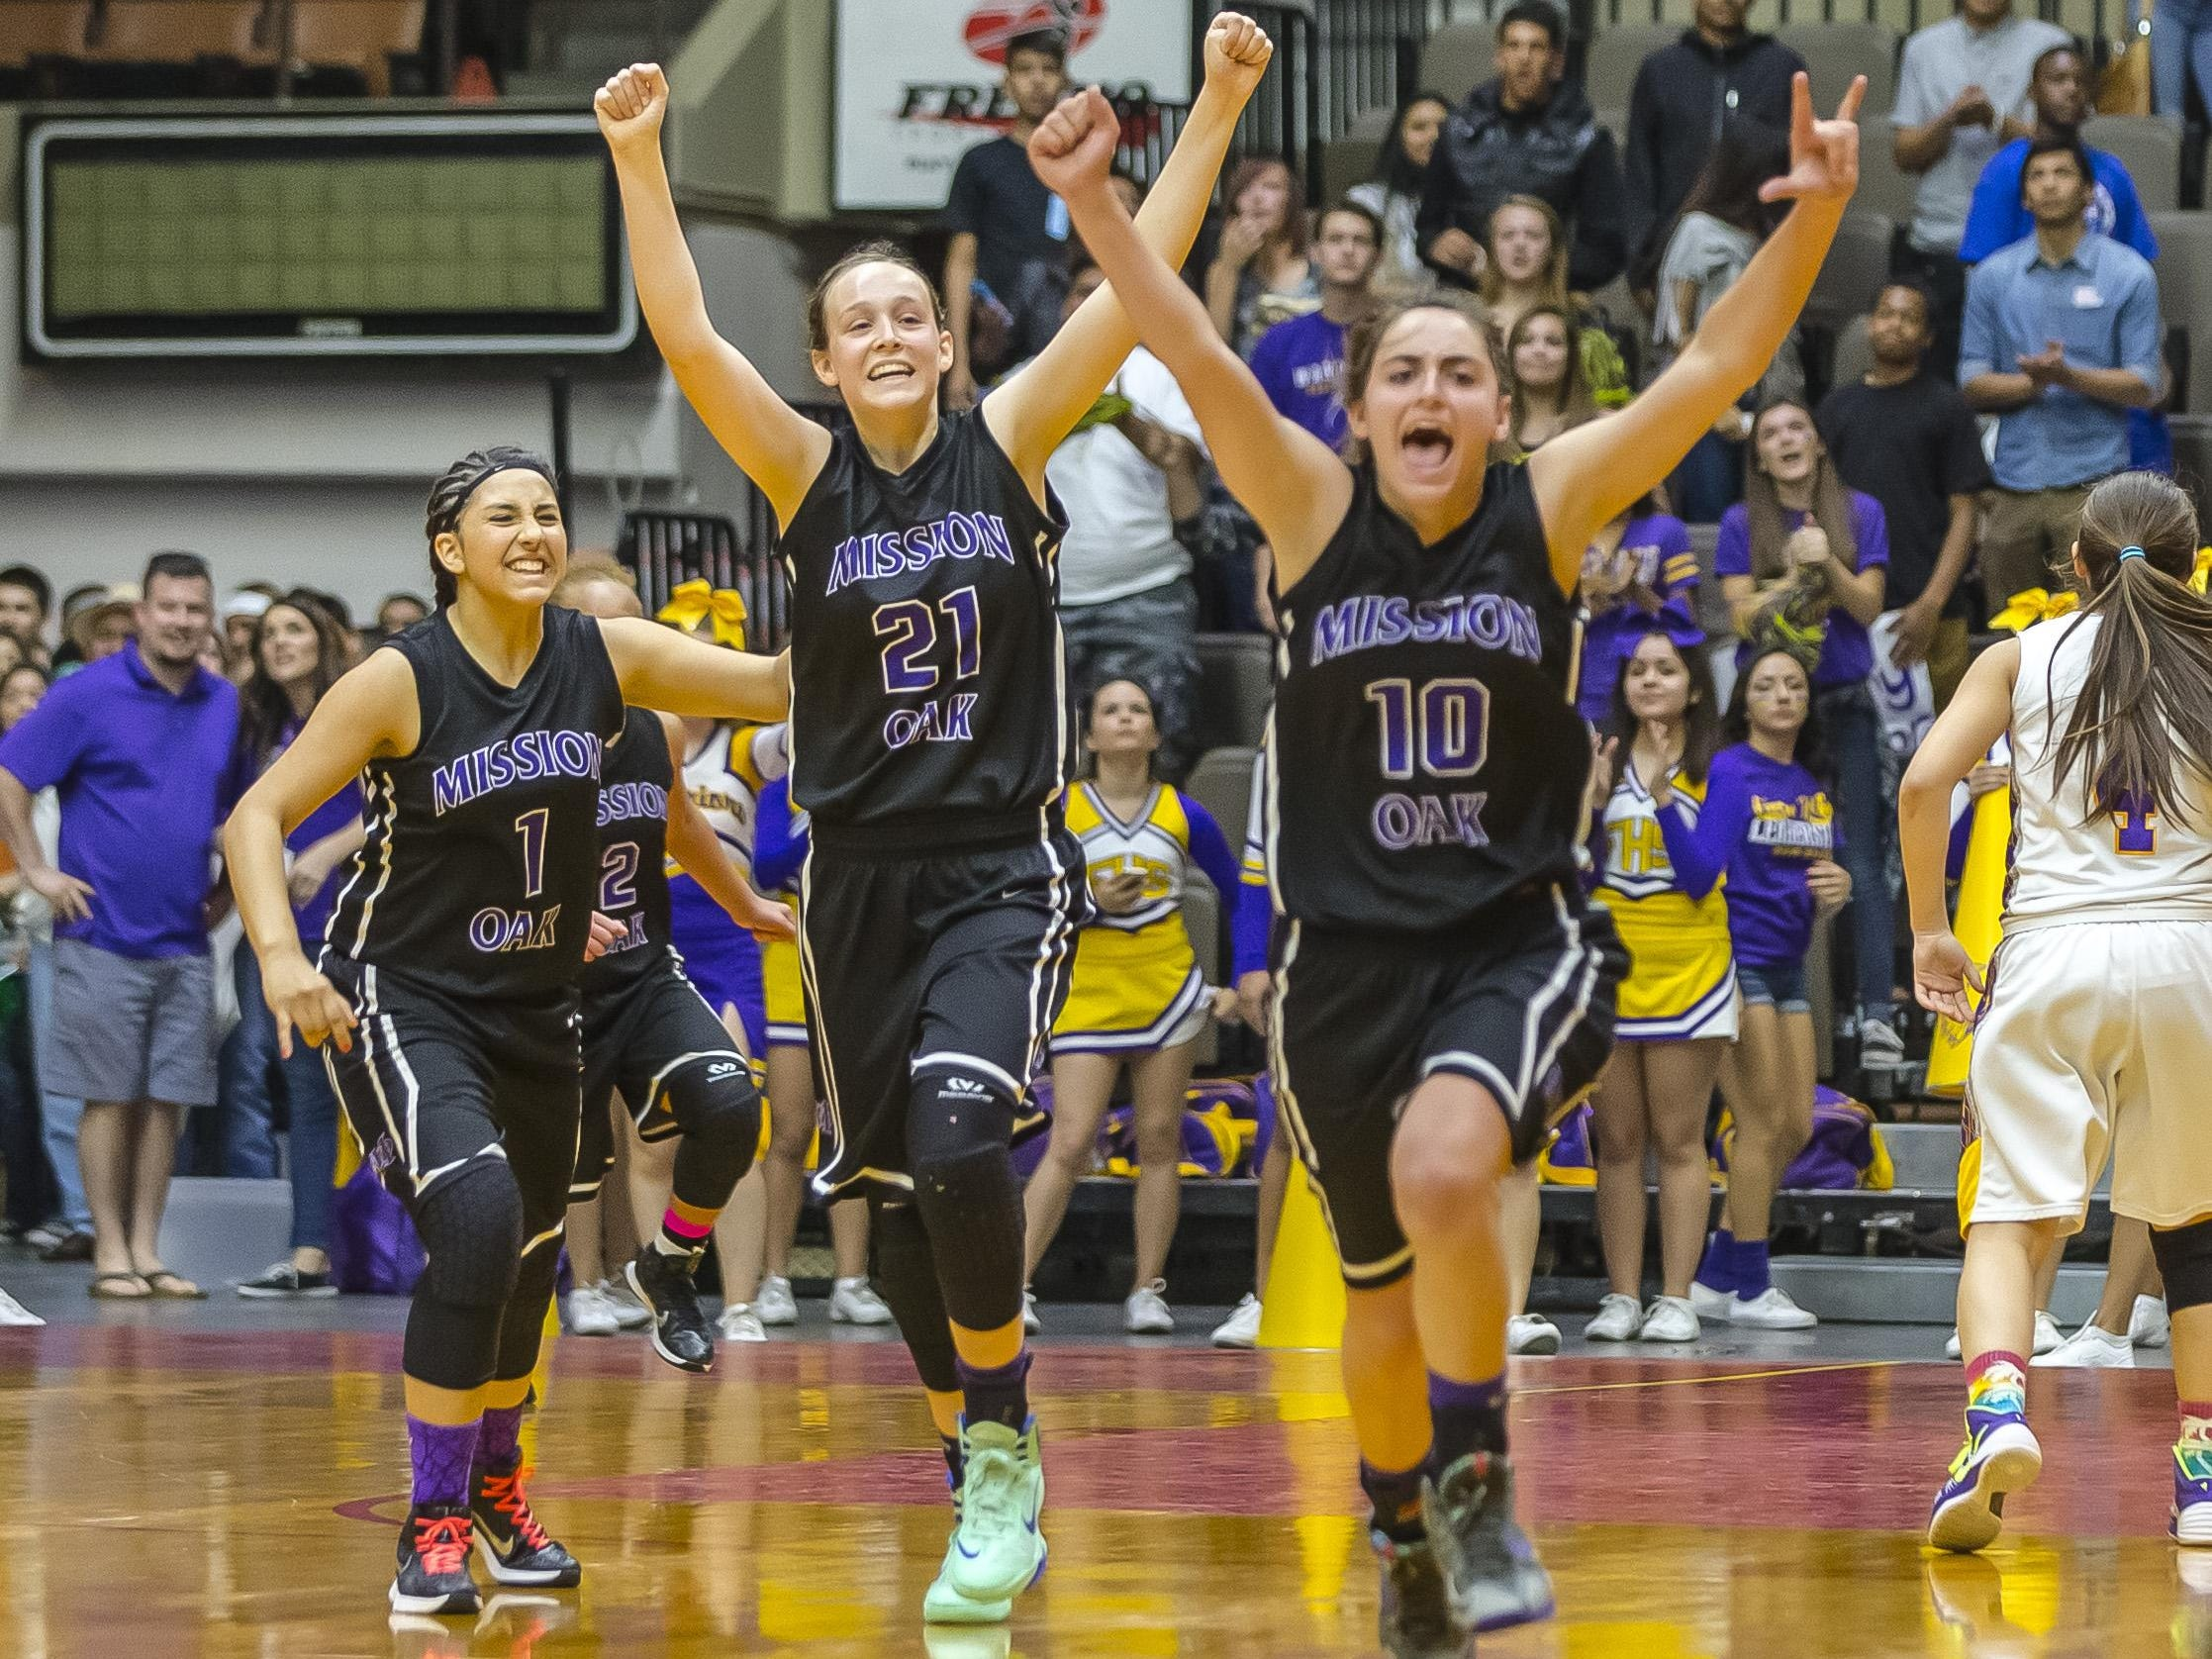 Mission Oak's Tristen Myers (21) Rhegan Fernandes (10) and Samantha Ruvalcaba (1) celebrate winning the 2014-15 Central Section Division III championship at Selland Arena in Fresno.